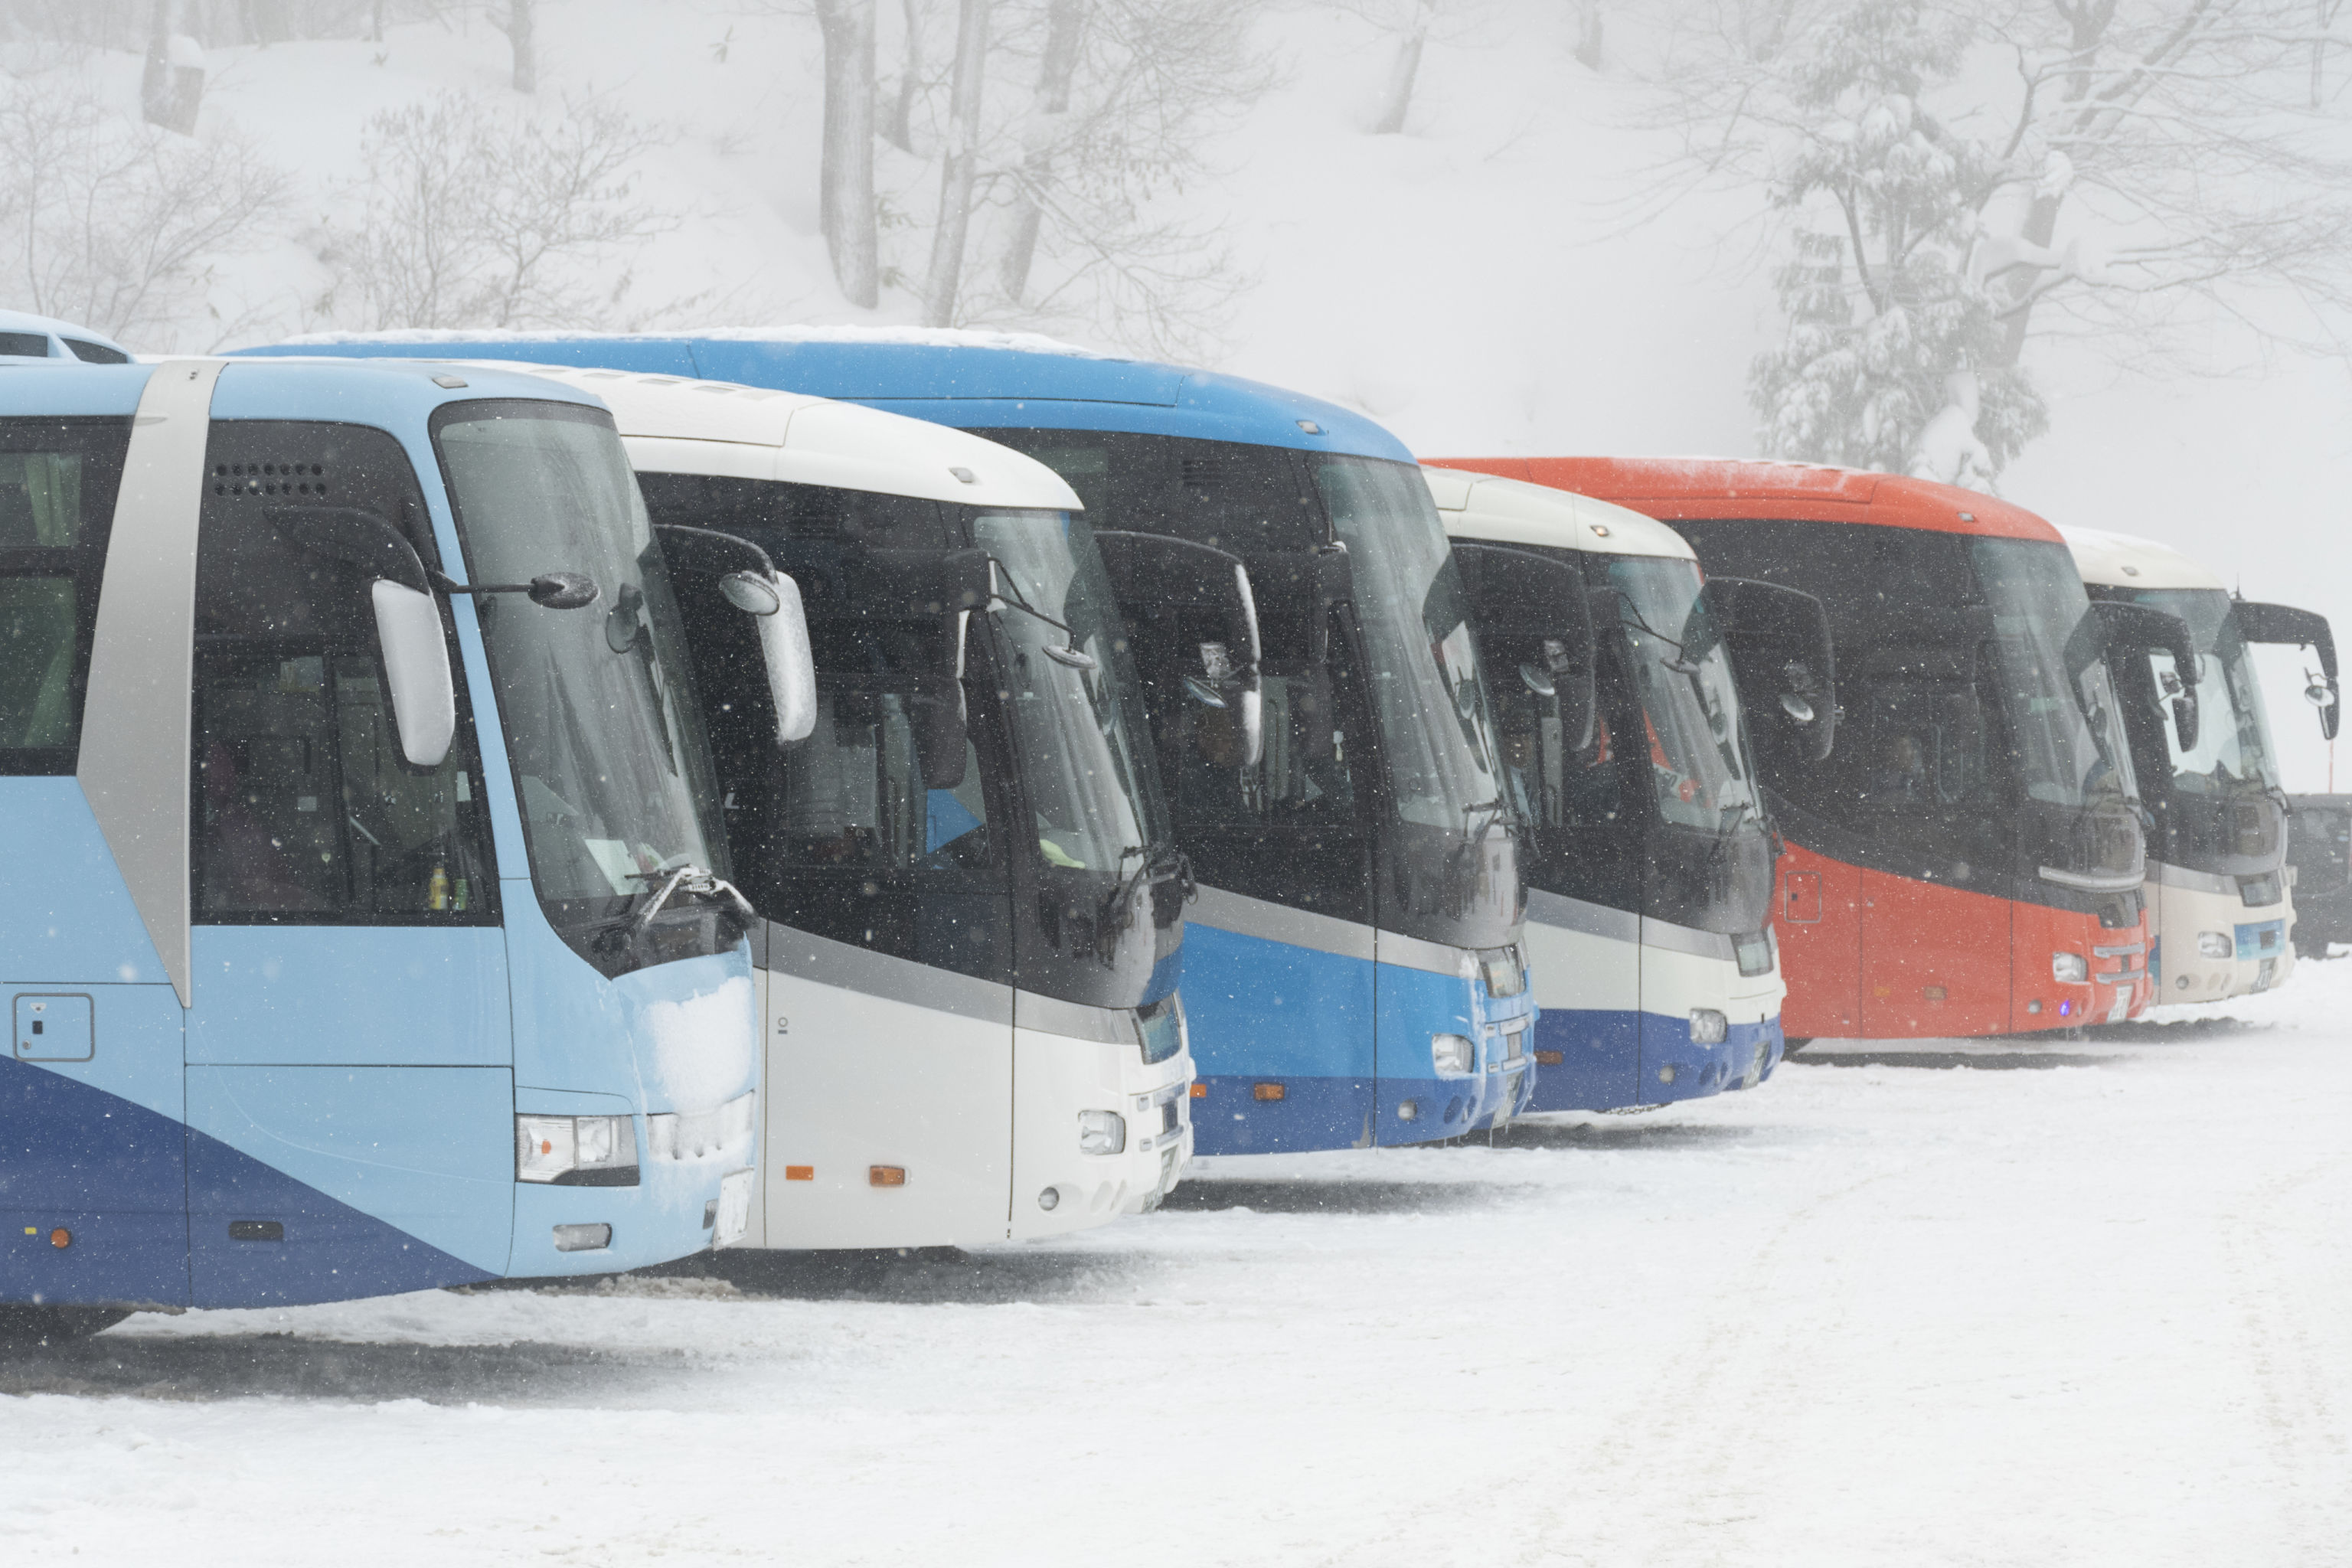 several buses lined up in winter